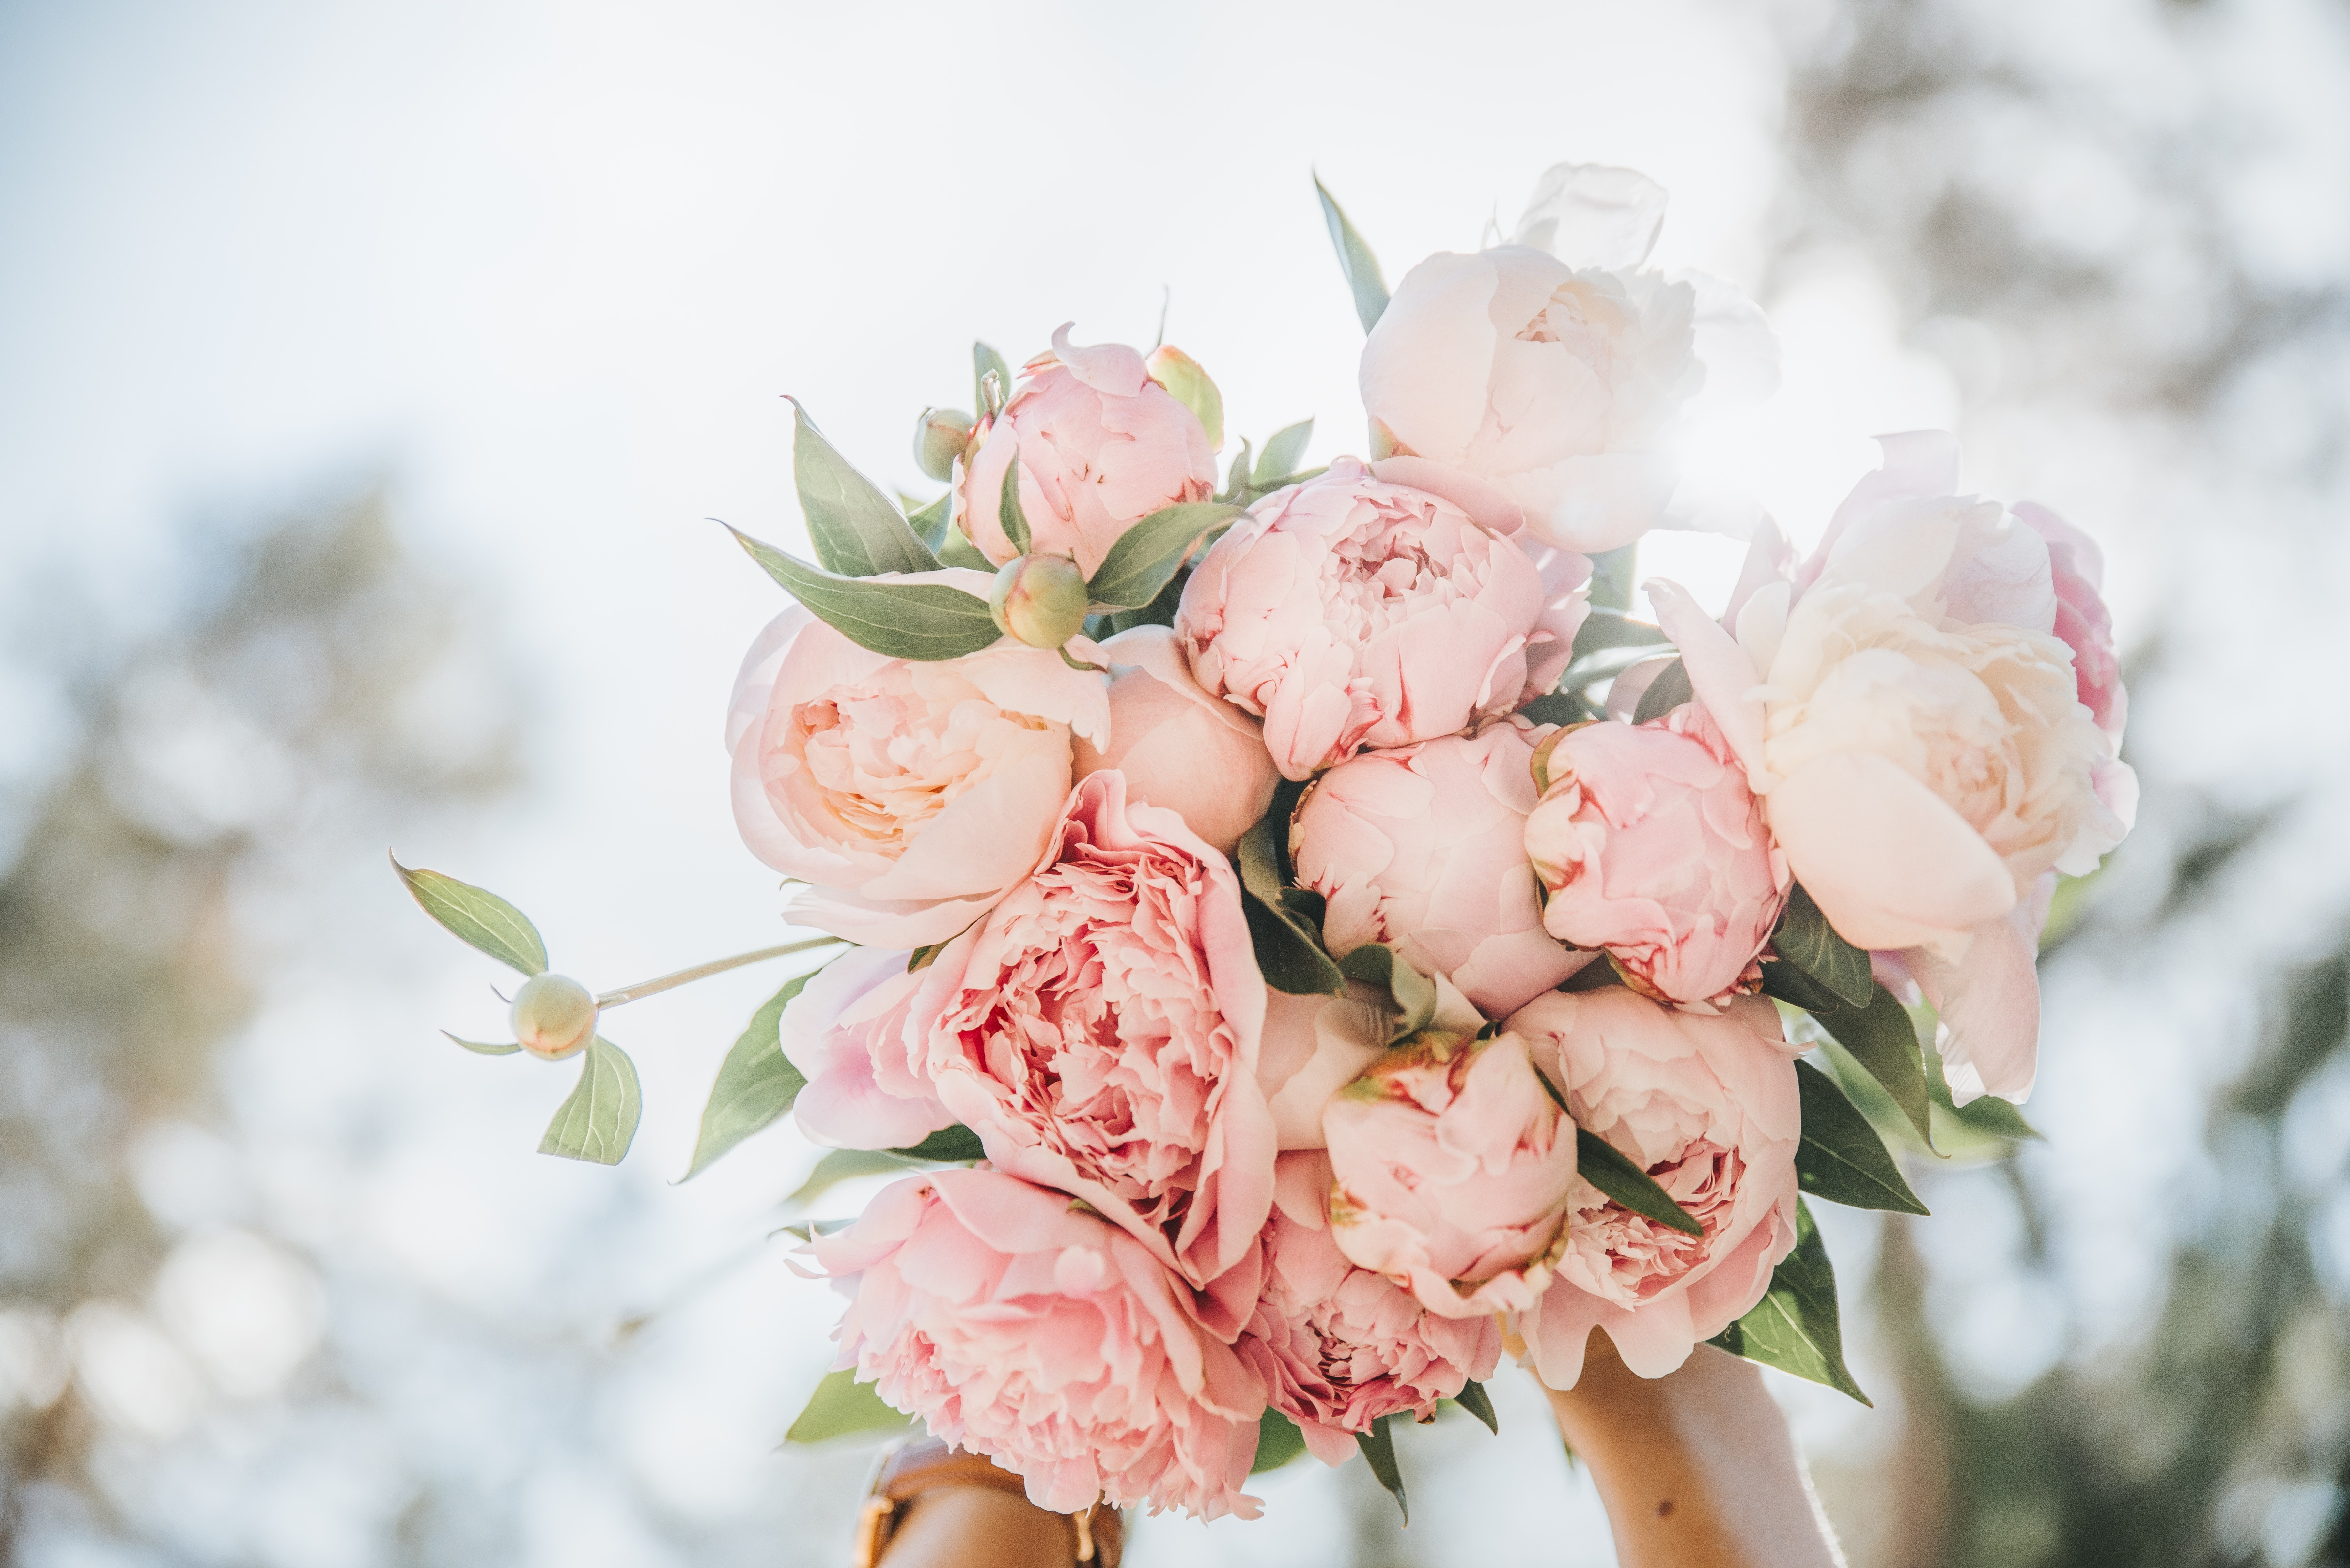 shallow focus photography of bouquet of pink roses